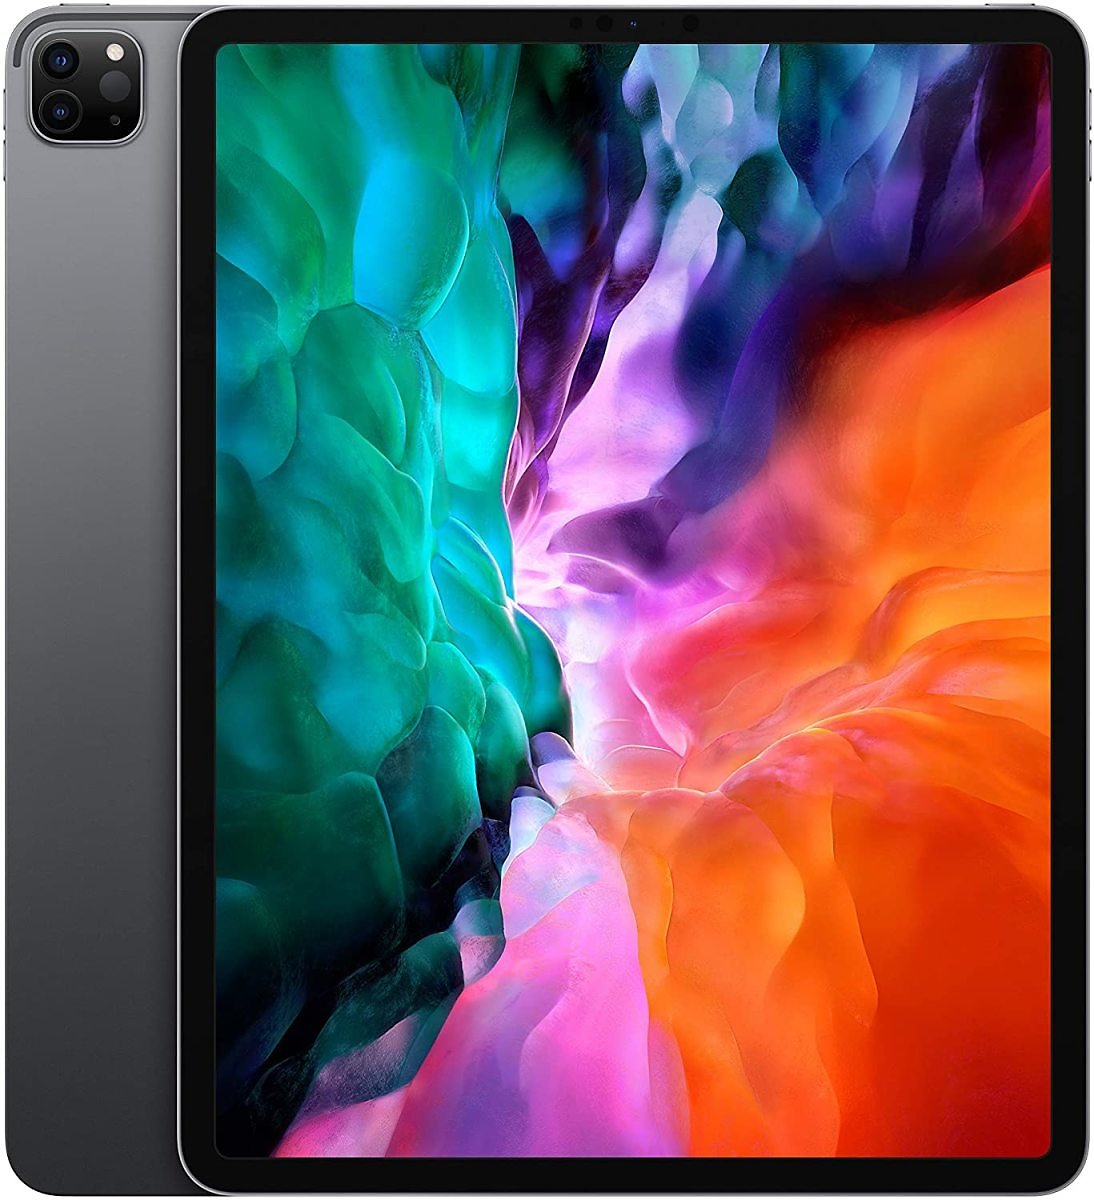 New Apple IPad Pro (12.9-inch, Wi-Fi, 512GB, 4th Generation) - Space Gray or Silver